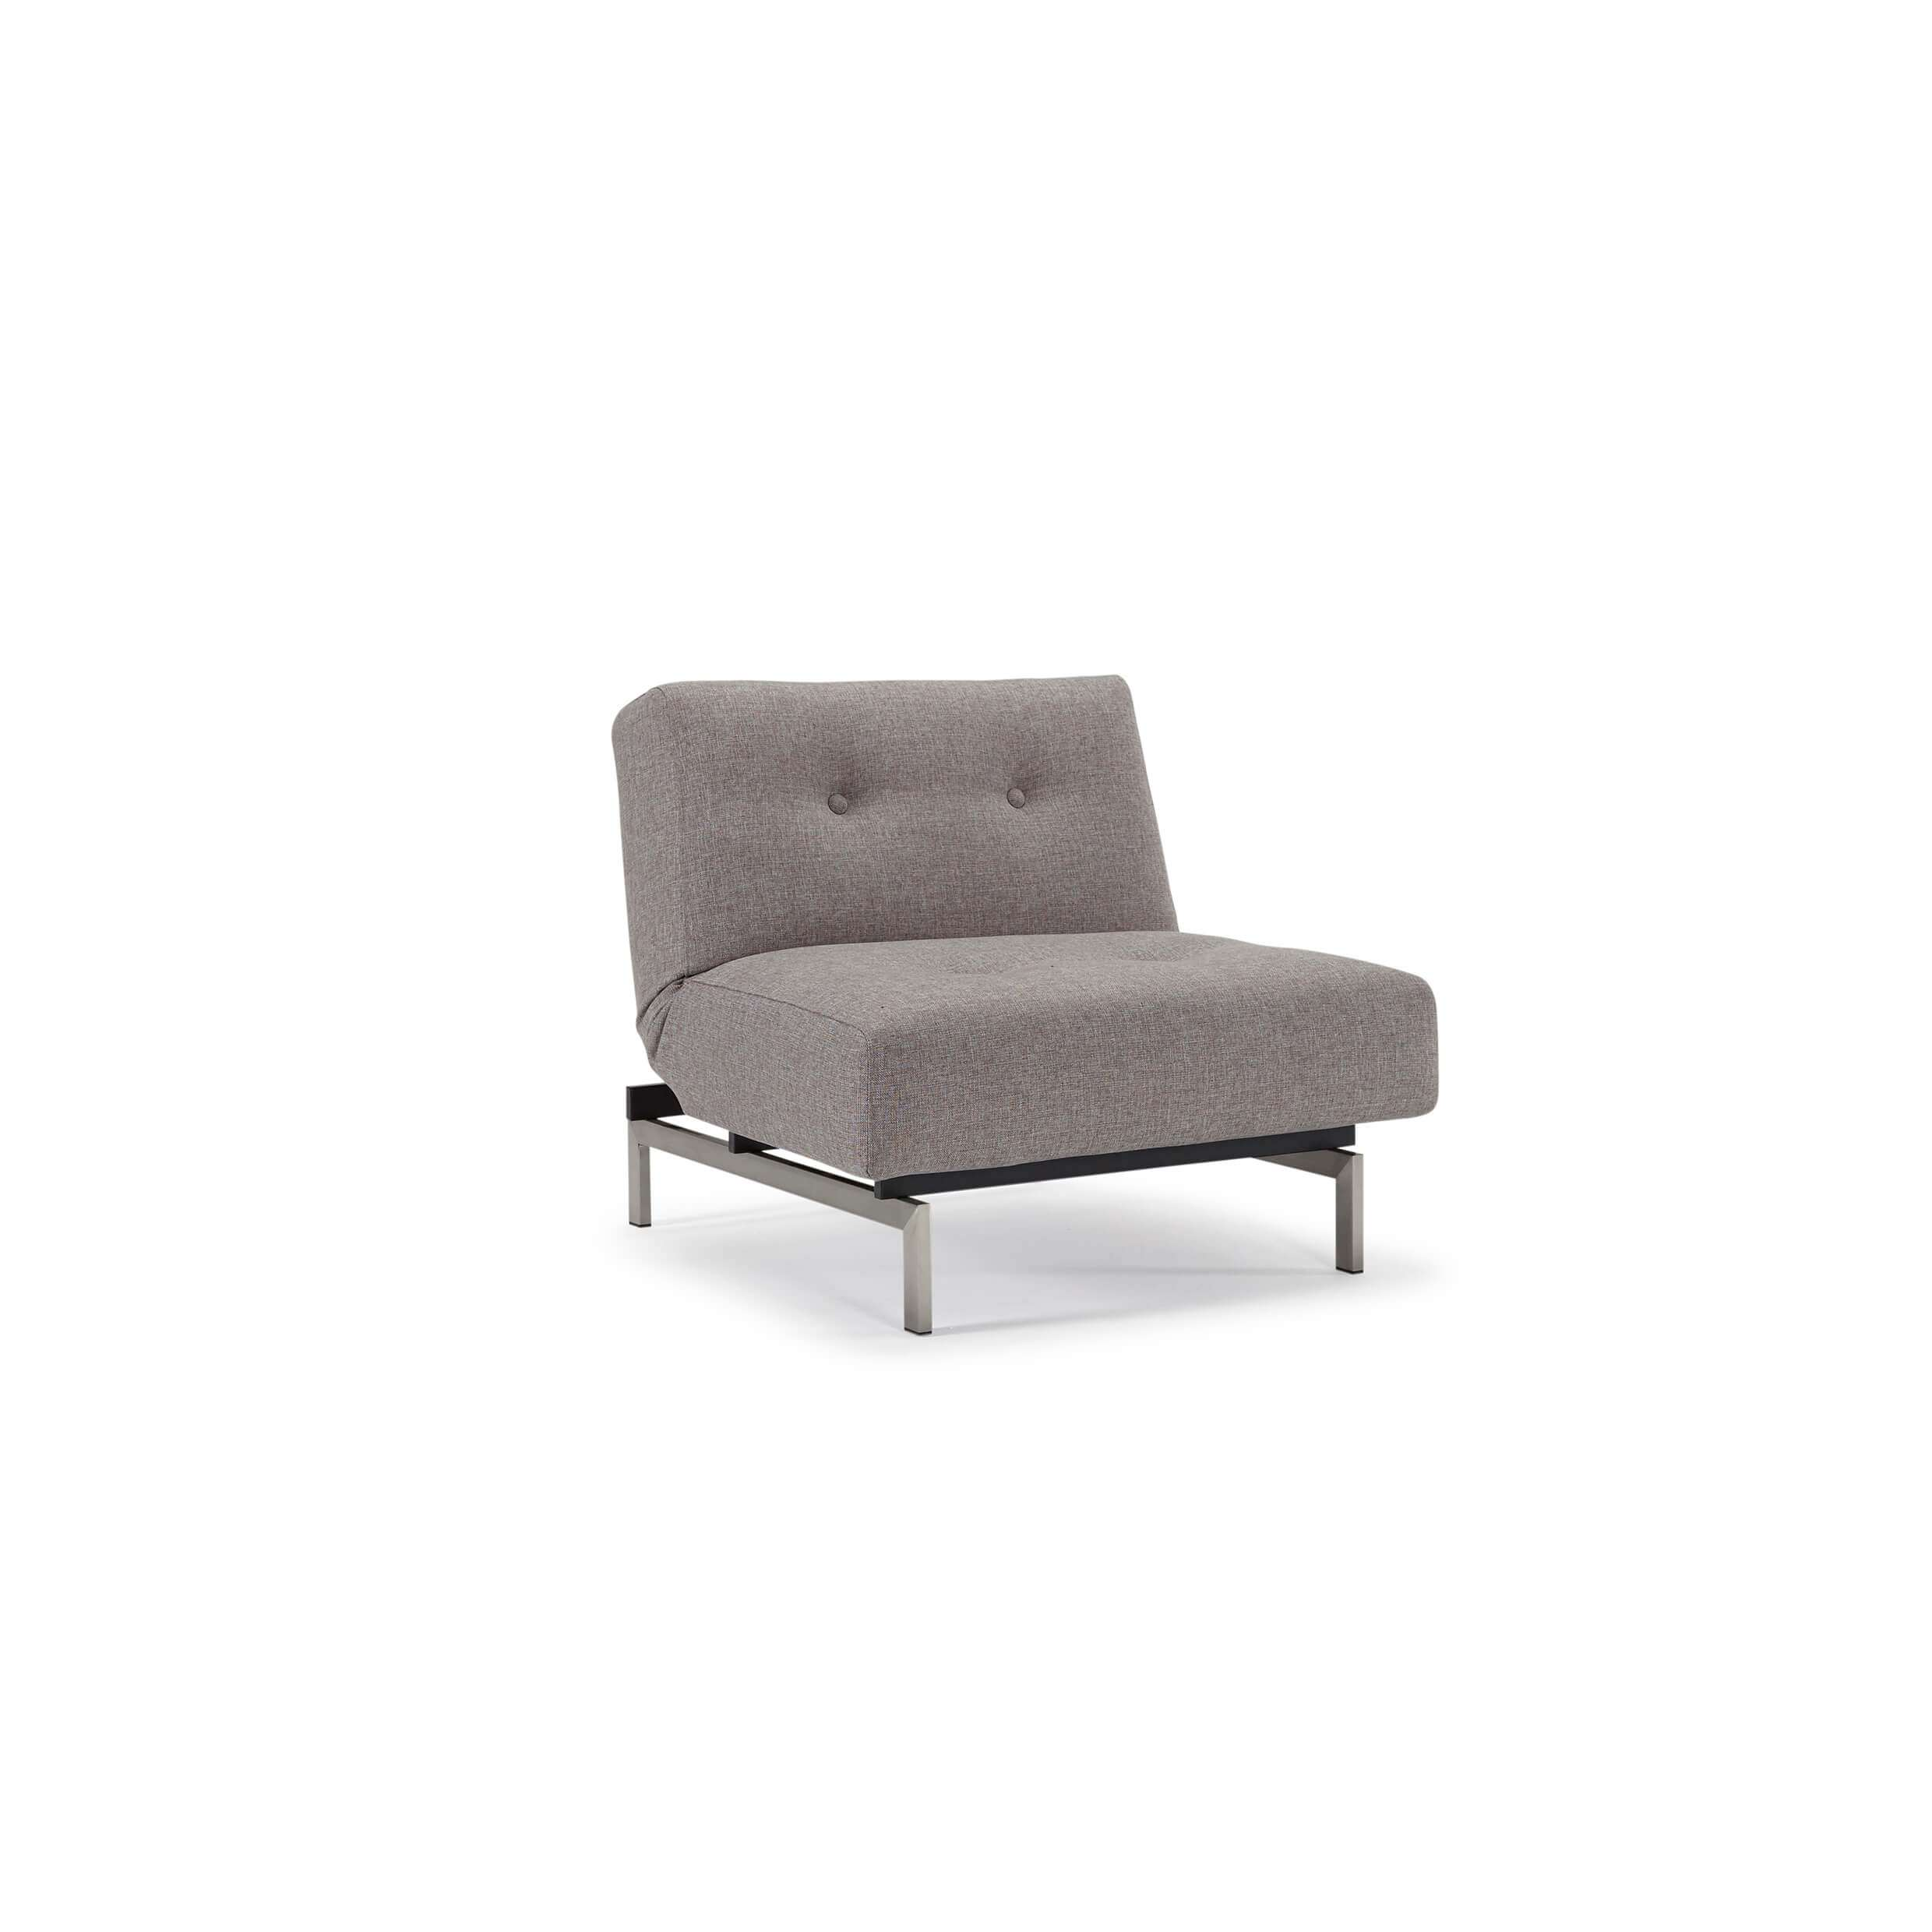 Chair That Converts To A Bed Enlarge Plus Futon Chair Bed